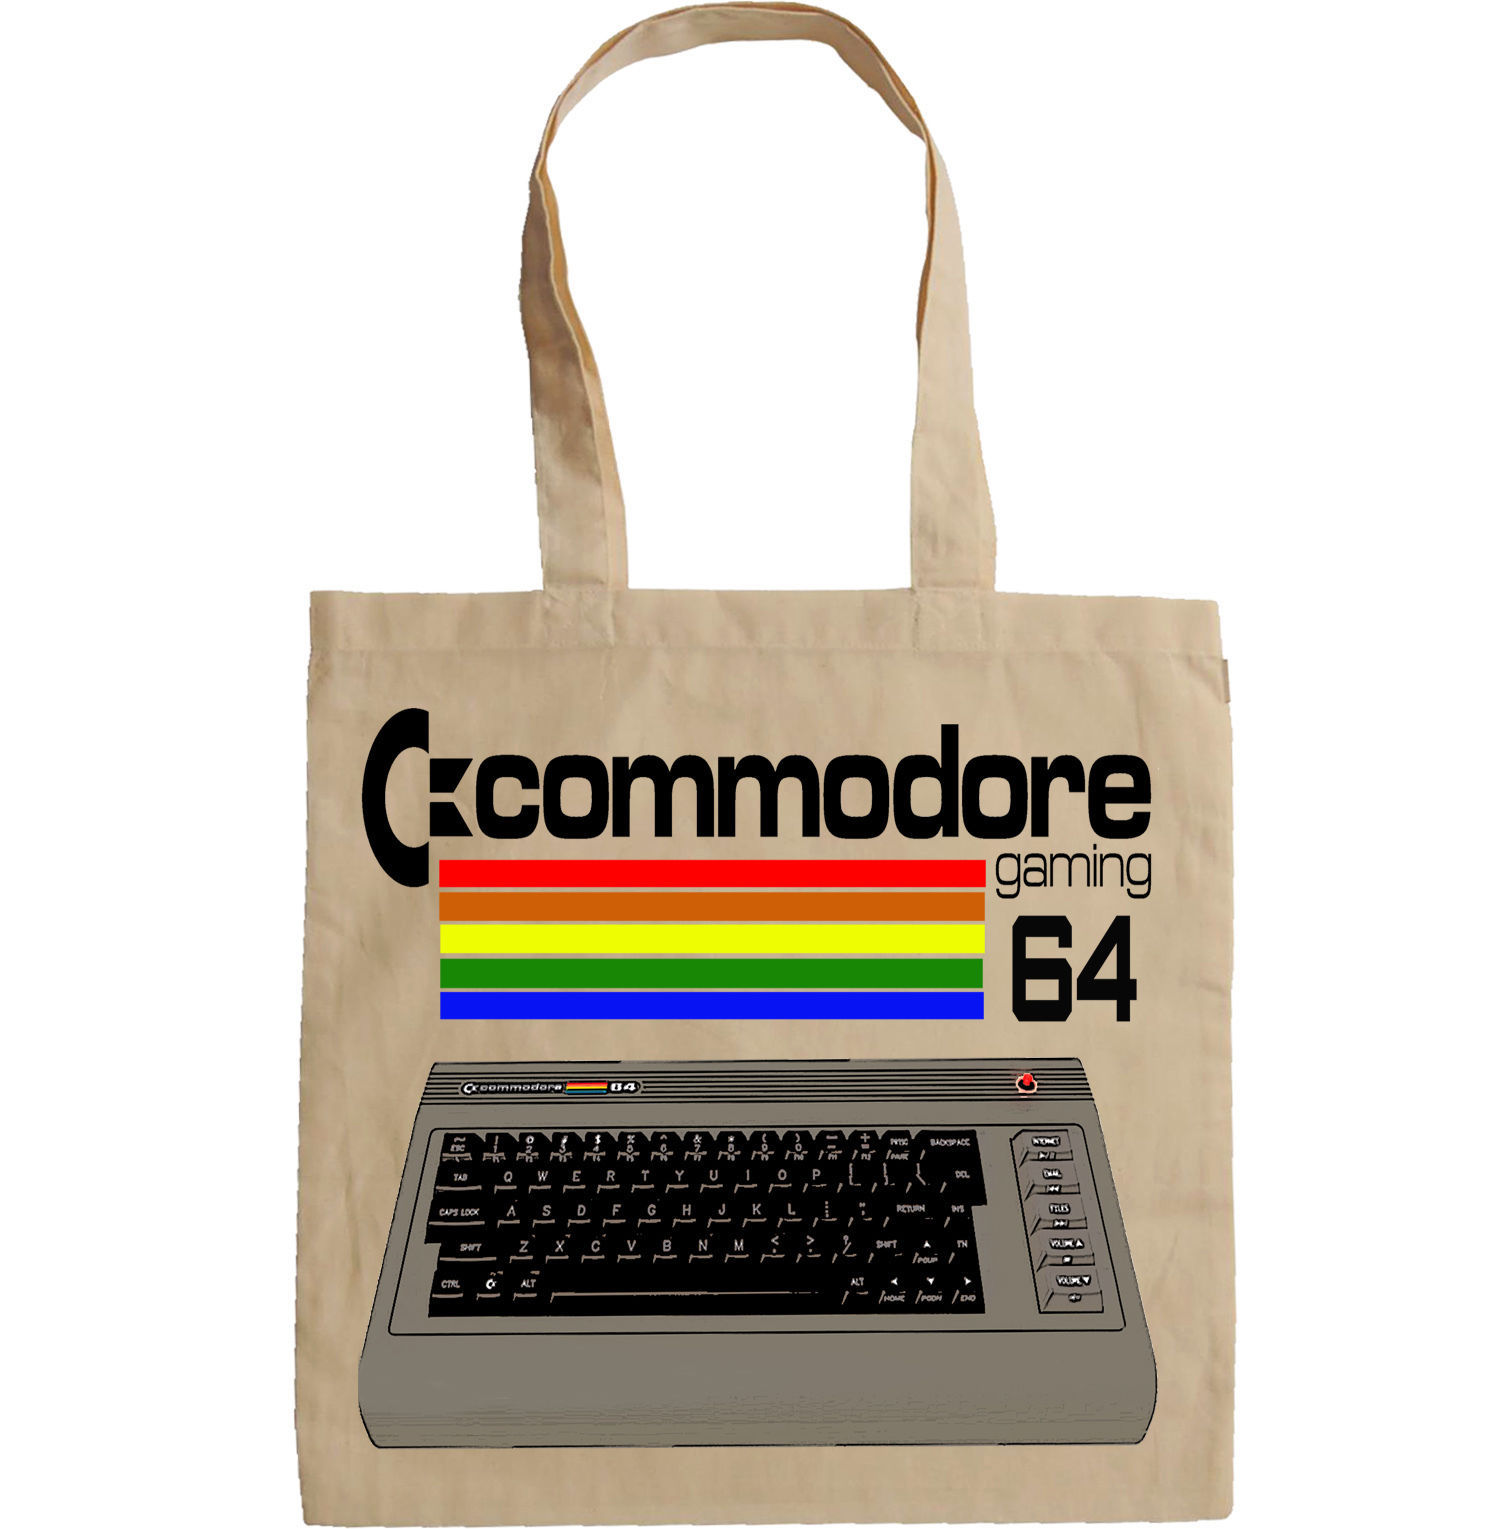 VINTAGE COMMODORE 64 COMPUTER - NEW AMAZING GRAPHIC HAND BAG/TOTE BAG